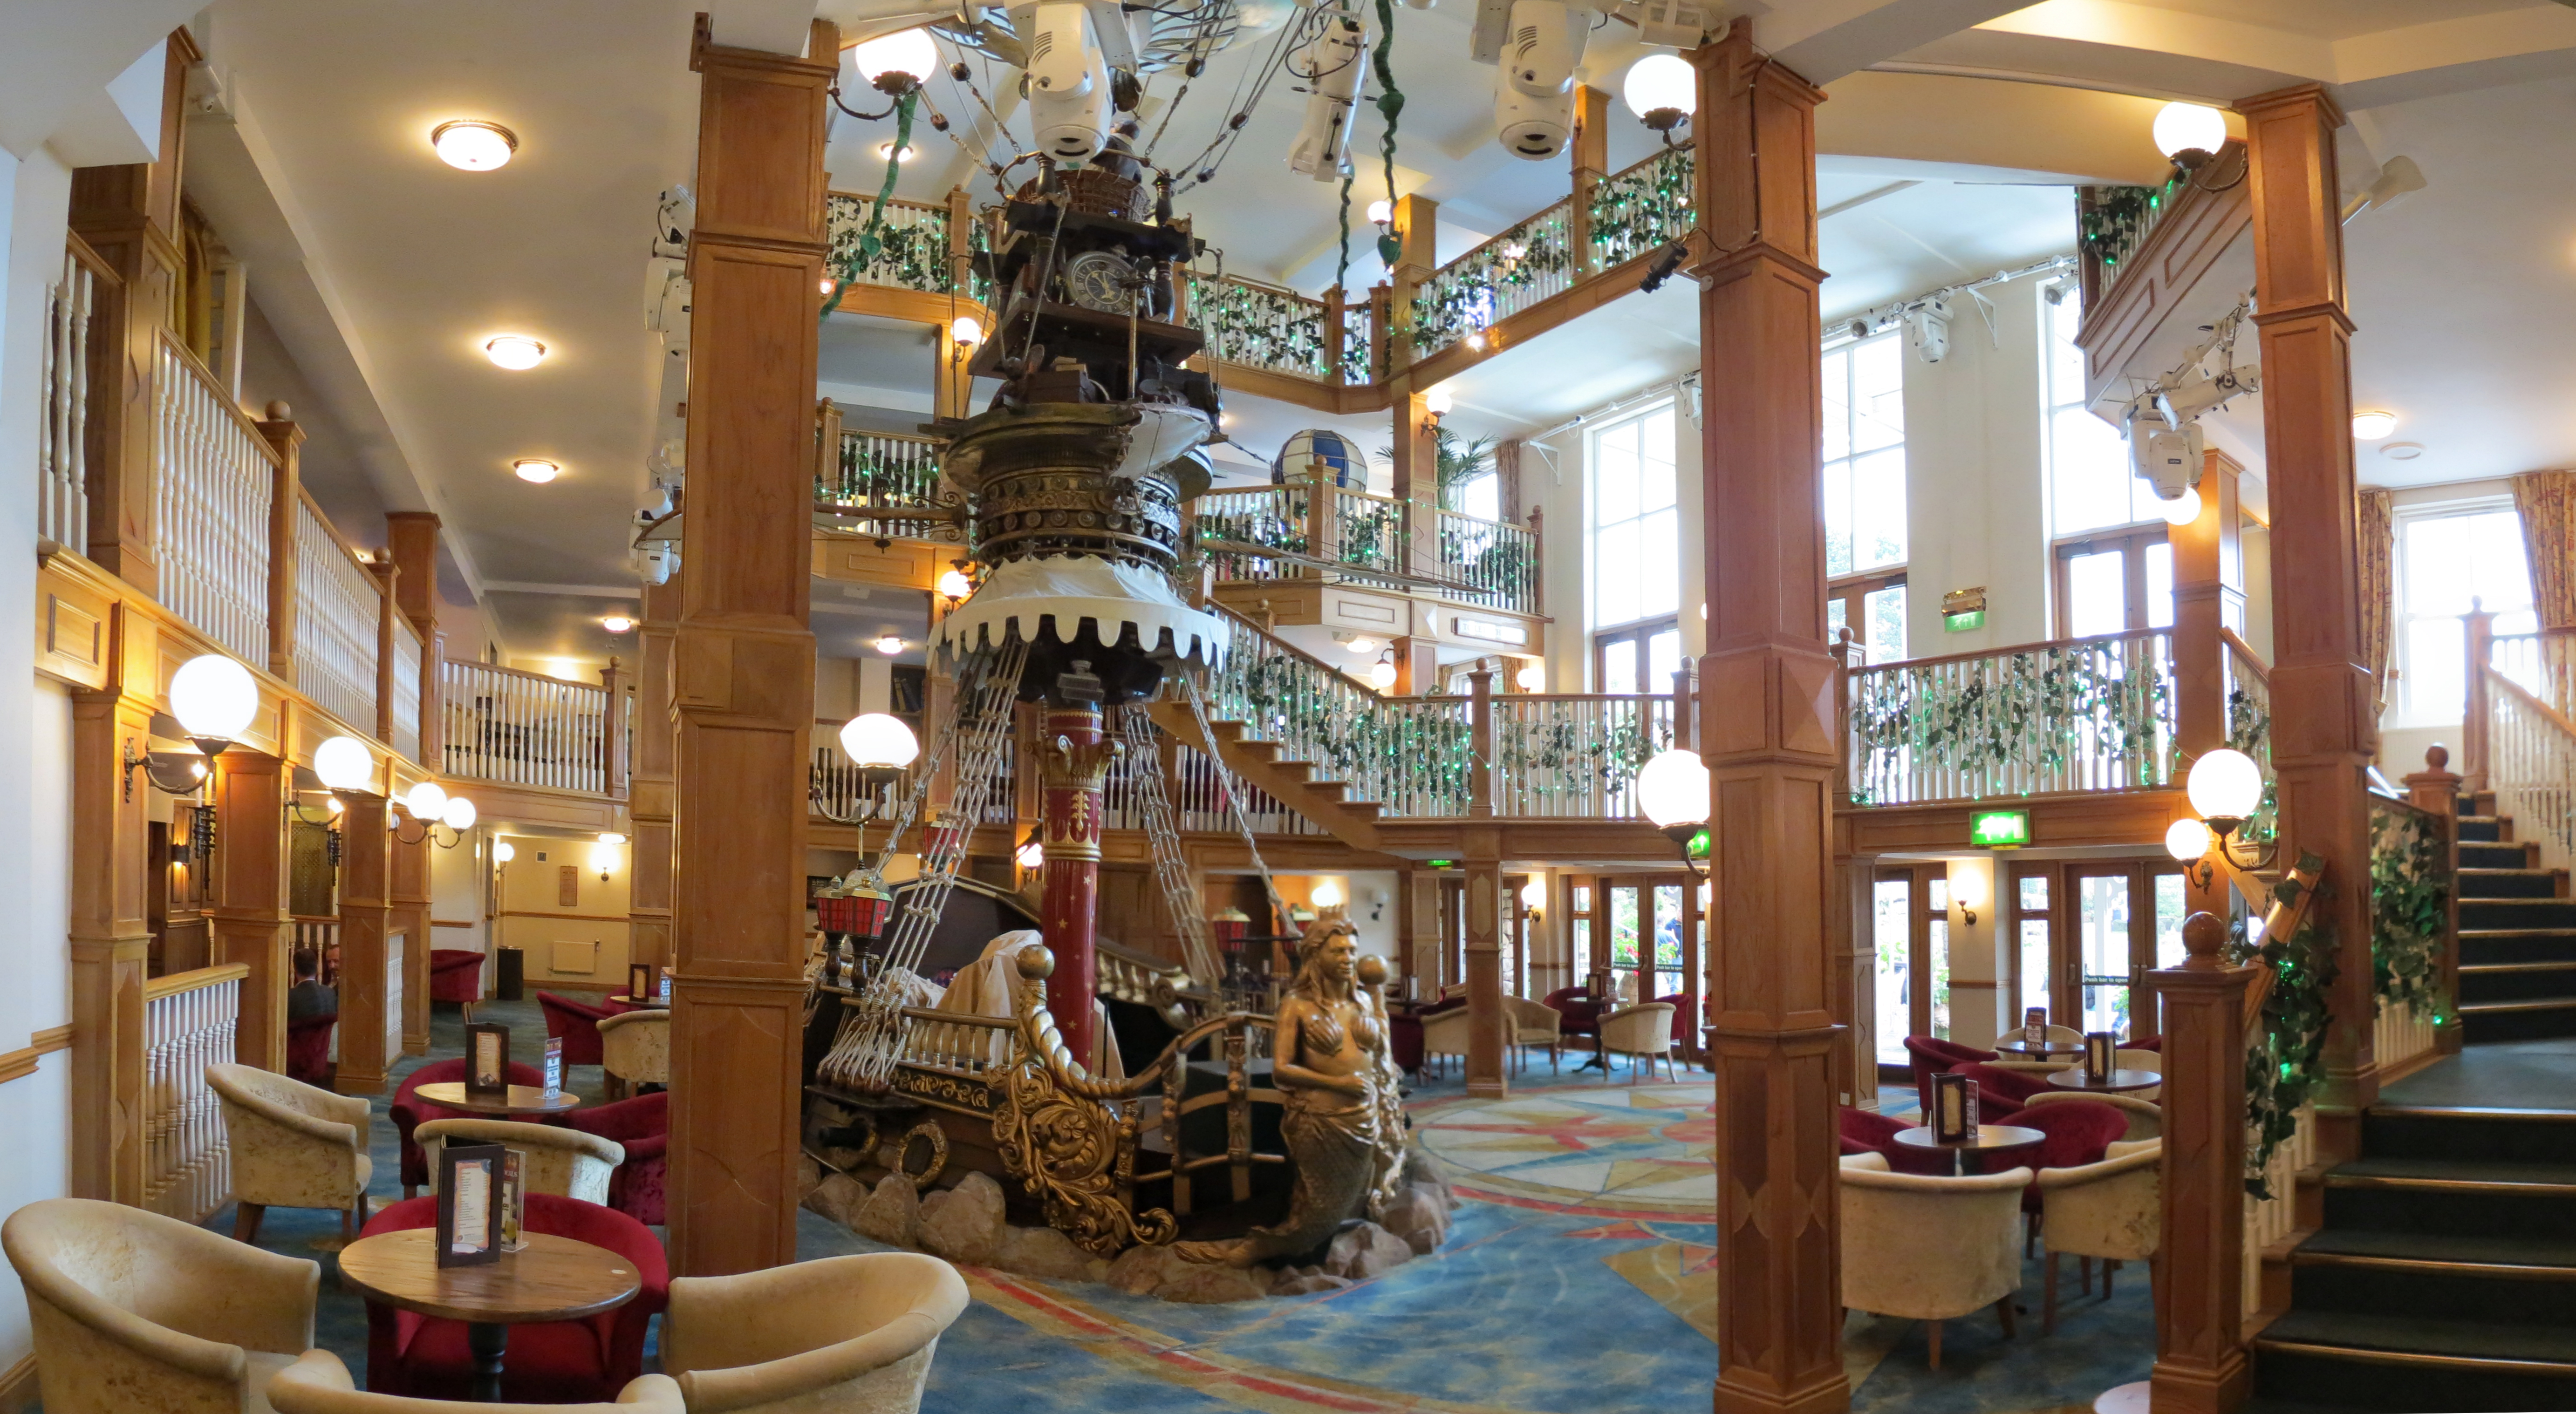 The flying ship in the alton towers hotel